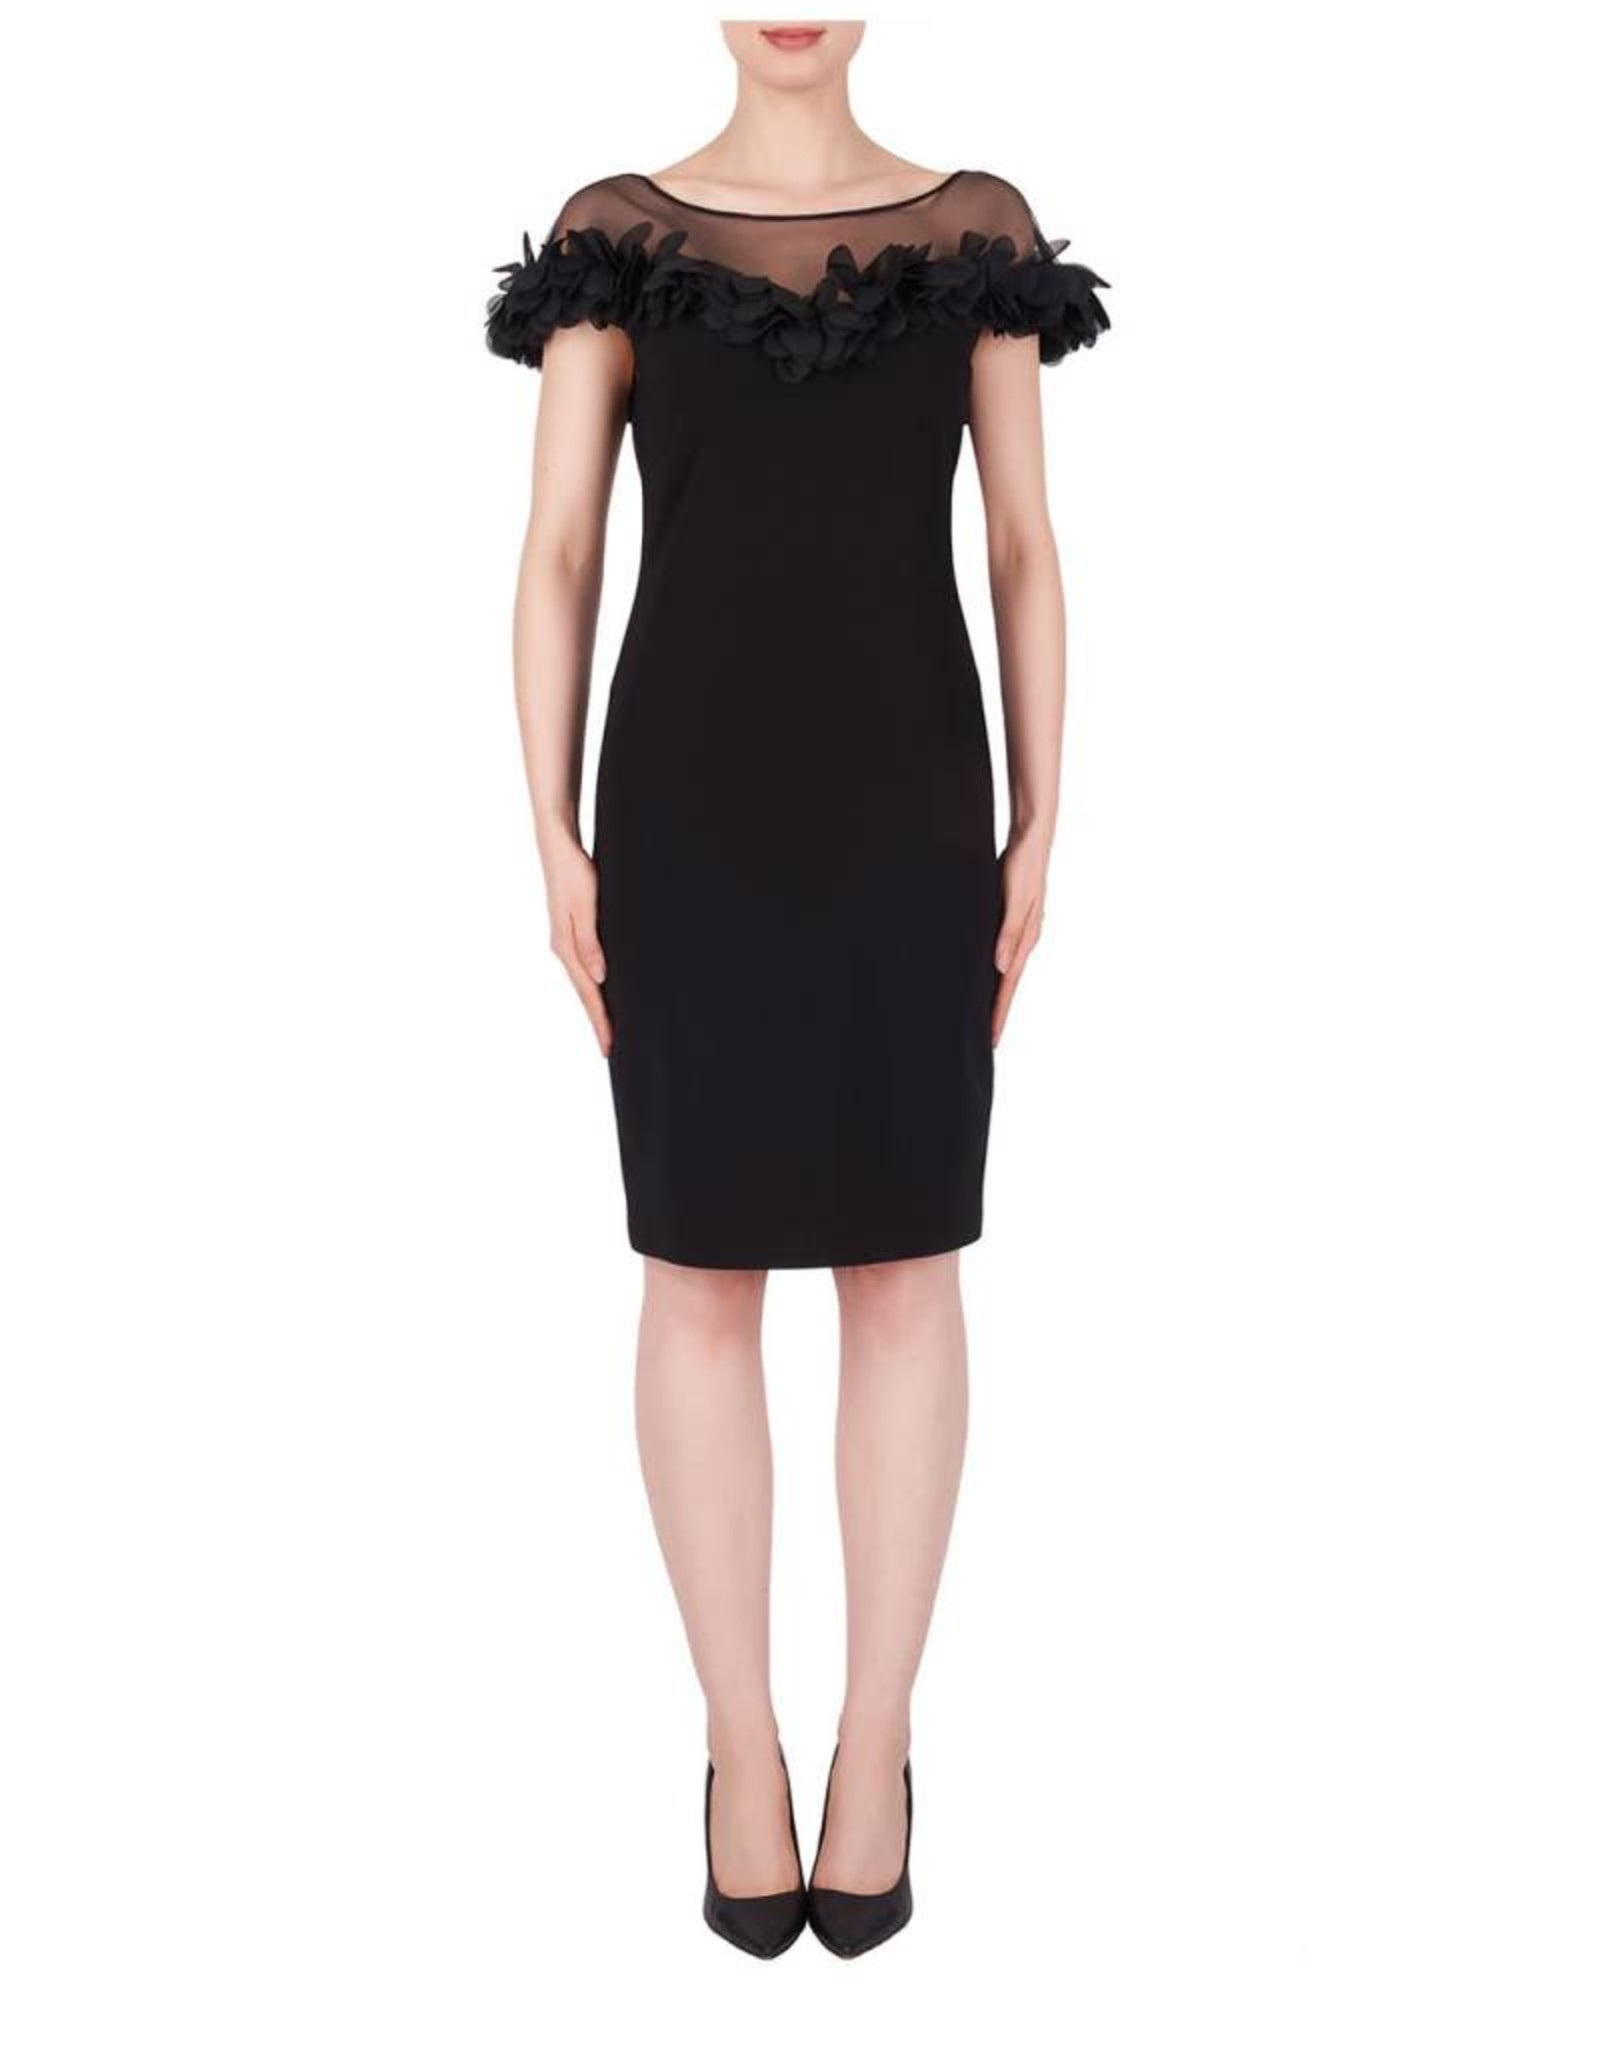 Joseph Ribkoff JOSEPH RIBKOFF LDS DRESS 191305